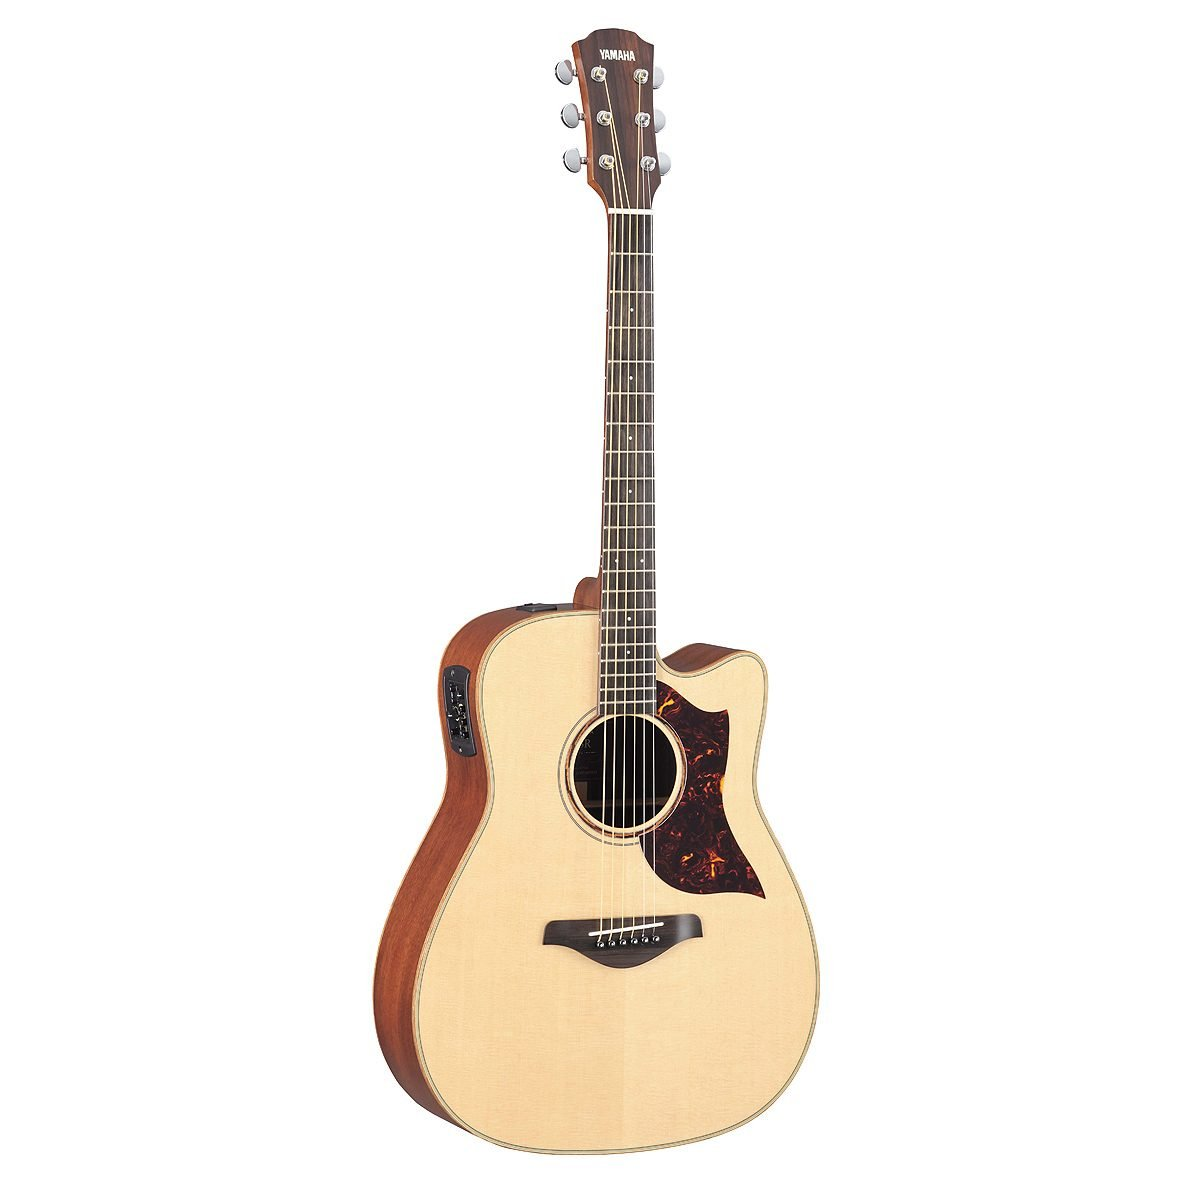 Yamaha A3 Series Acoustic Guitar Online Rebatae Offer